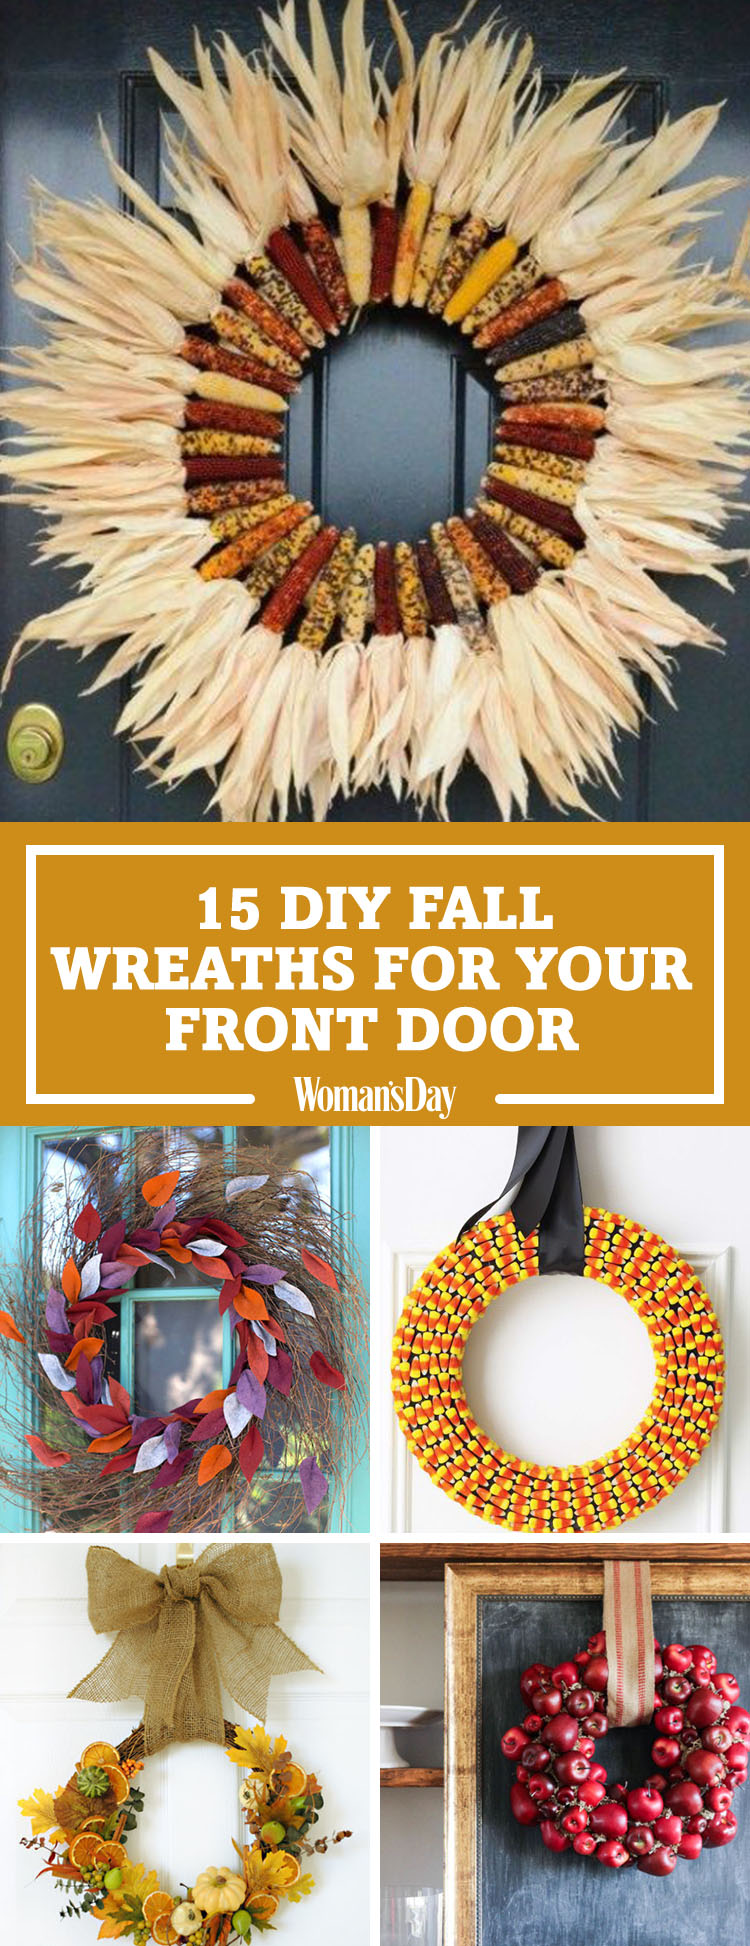 20 DIY Fall Wreaths - Easy Ideas for Autumn Wreaths